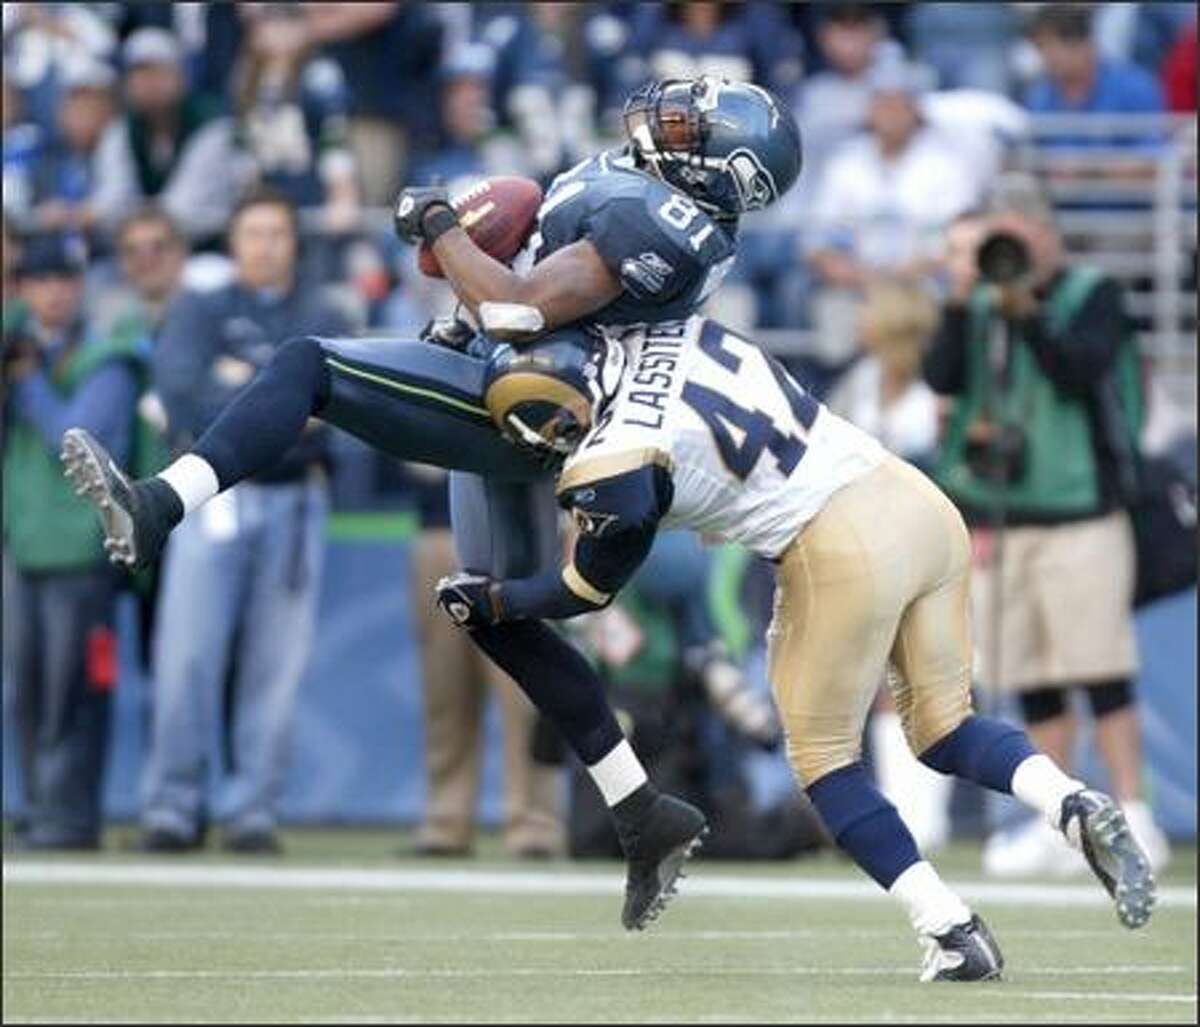 Seahawks wide receiver Koren Robinson actually held onto this ball after getting drilled by Ram' safety Kwamie Lassiter in the fourth quarter after a 10-yard gain and a first down.